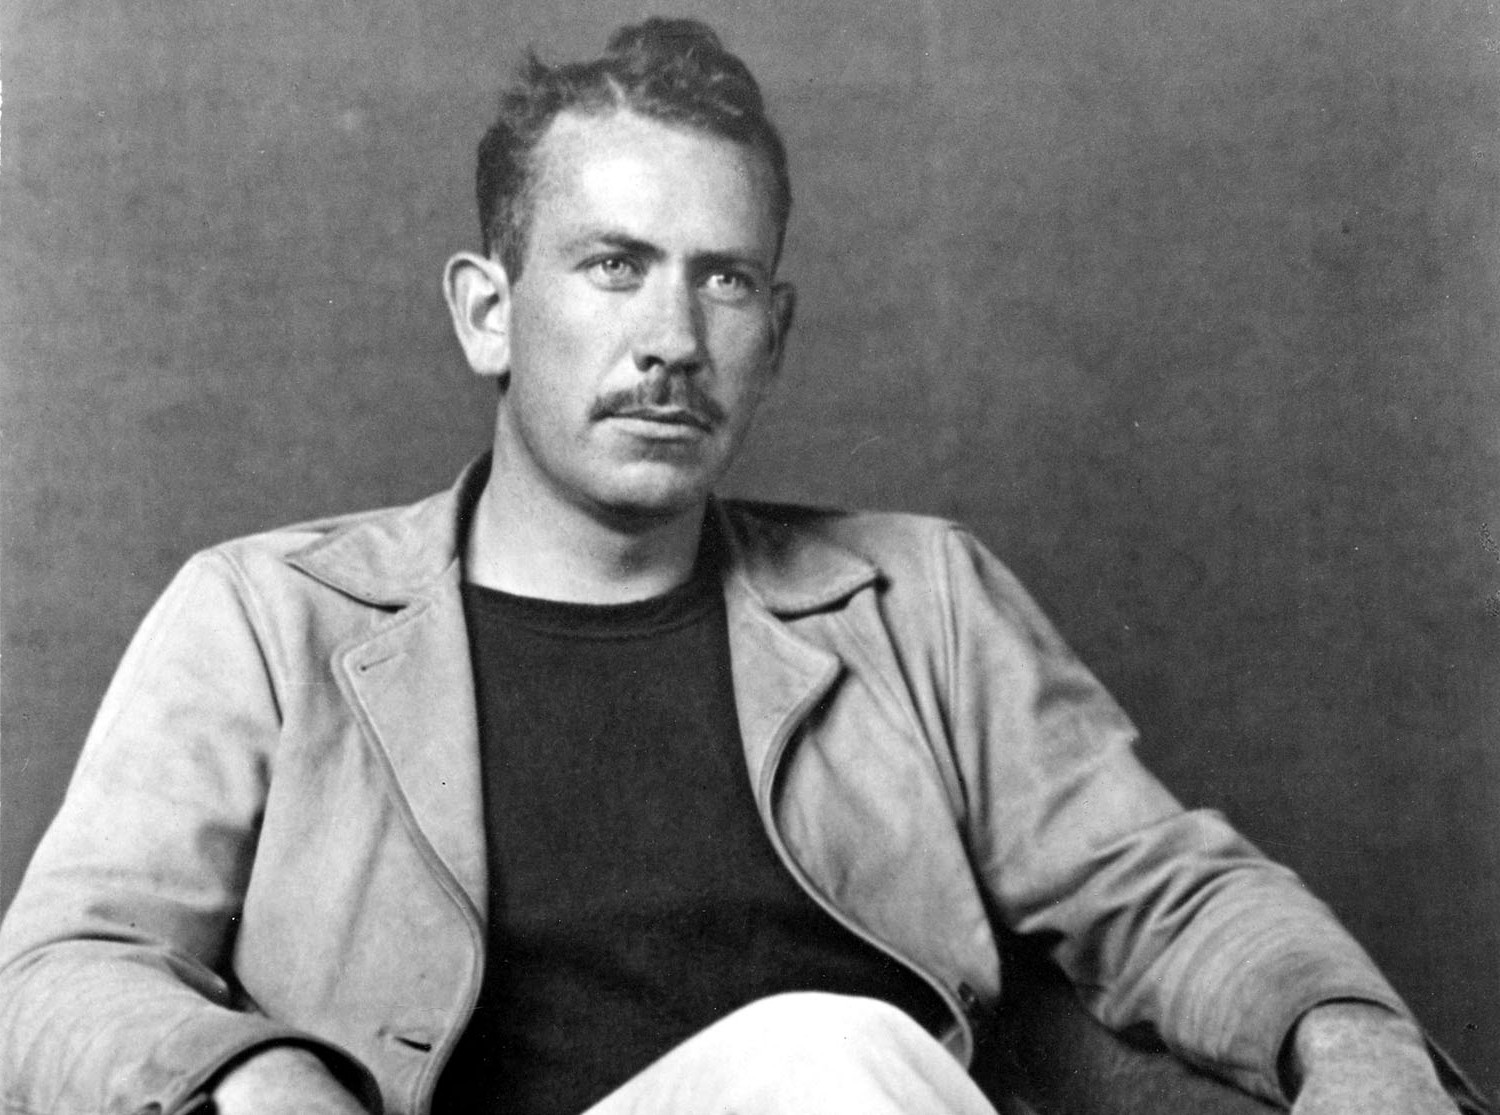 the life journey of john steinbeck For more information about john steinbeck's life and literature, visit the national steinbeck center the national steinbeck center is located at one main street in salinas, california, the.